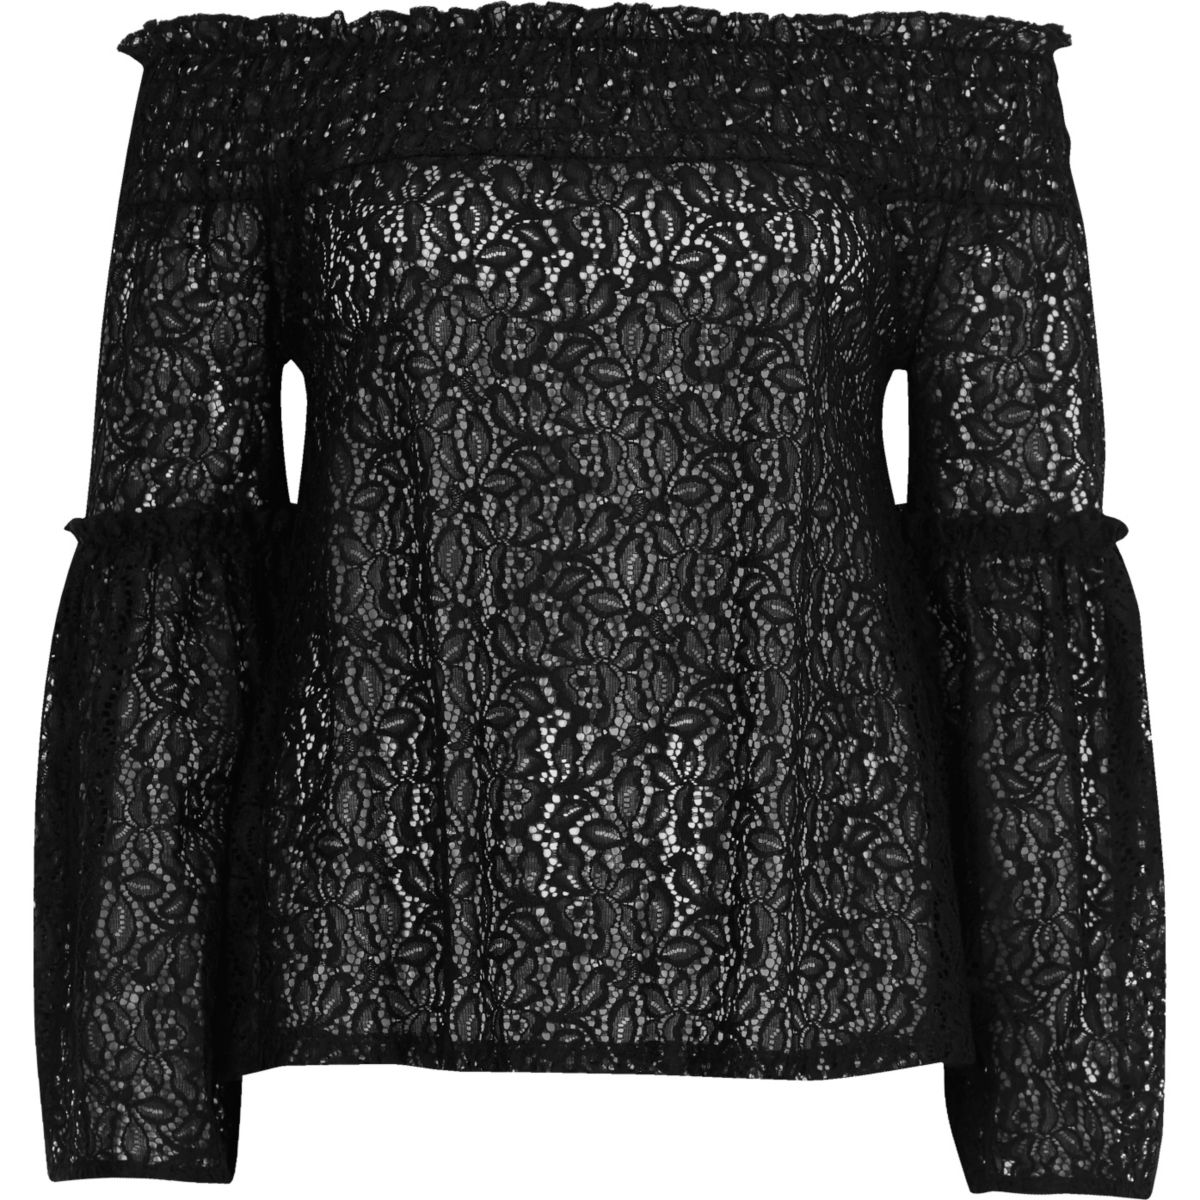 Black lace flared sleeve bardot top